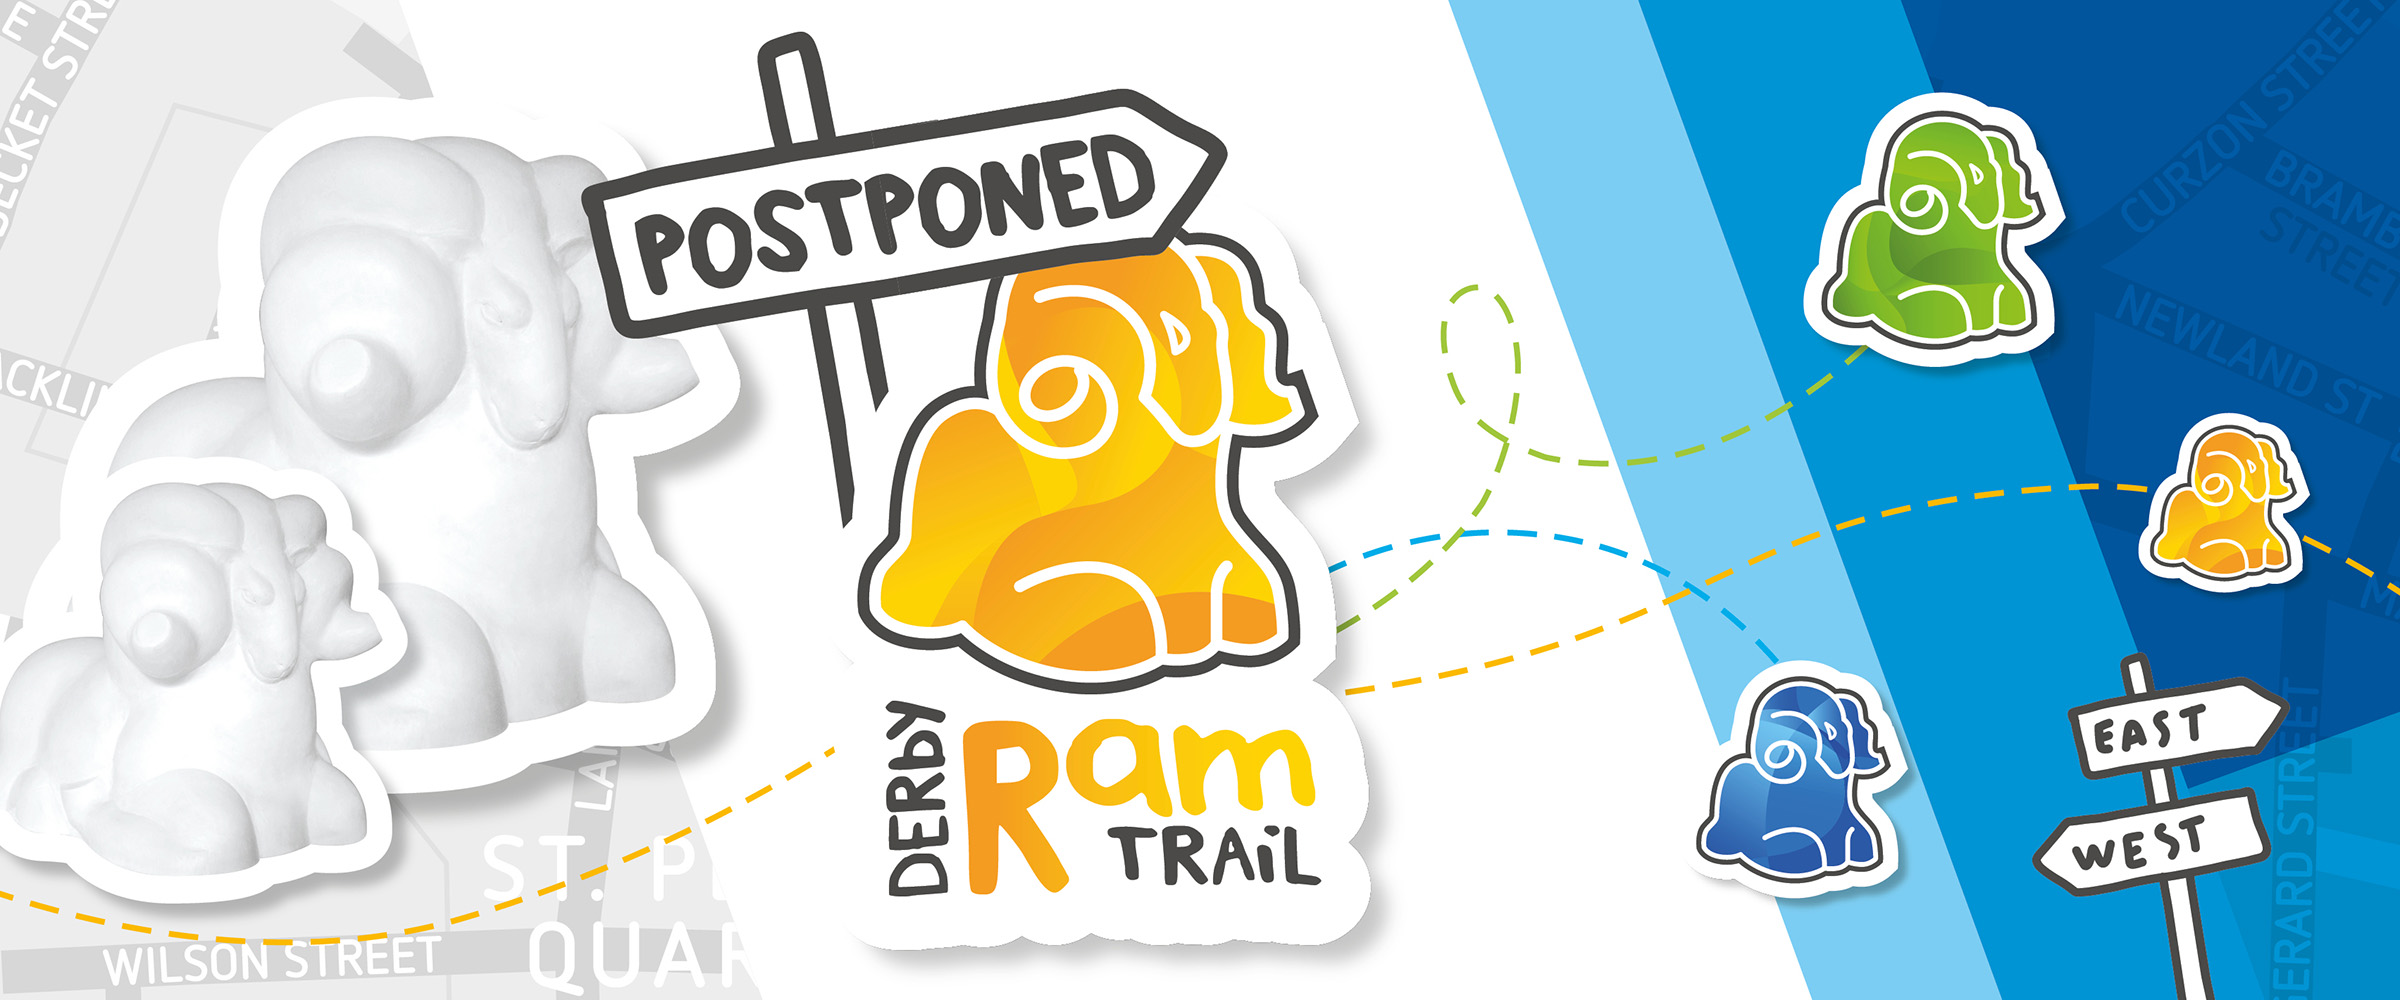 Postponement of the Derby Ram Trail